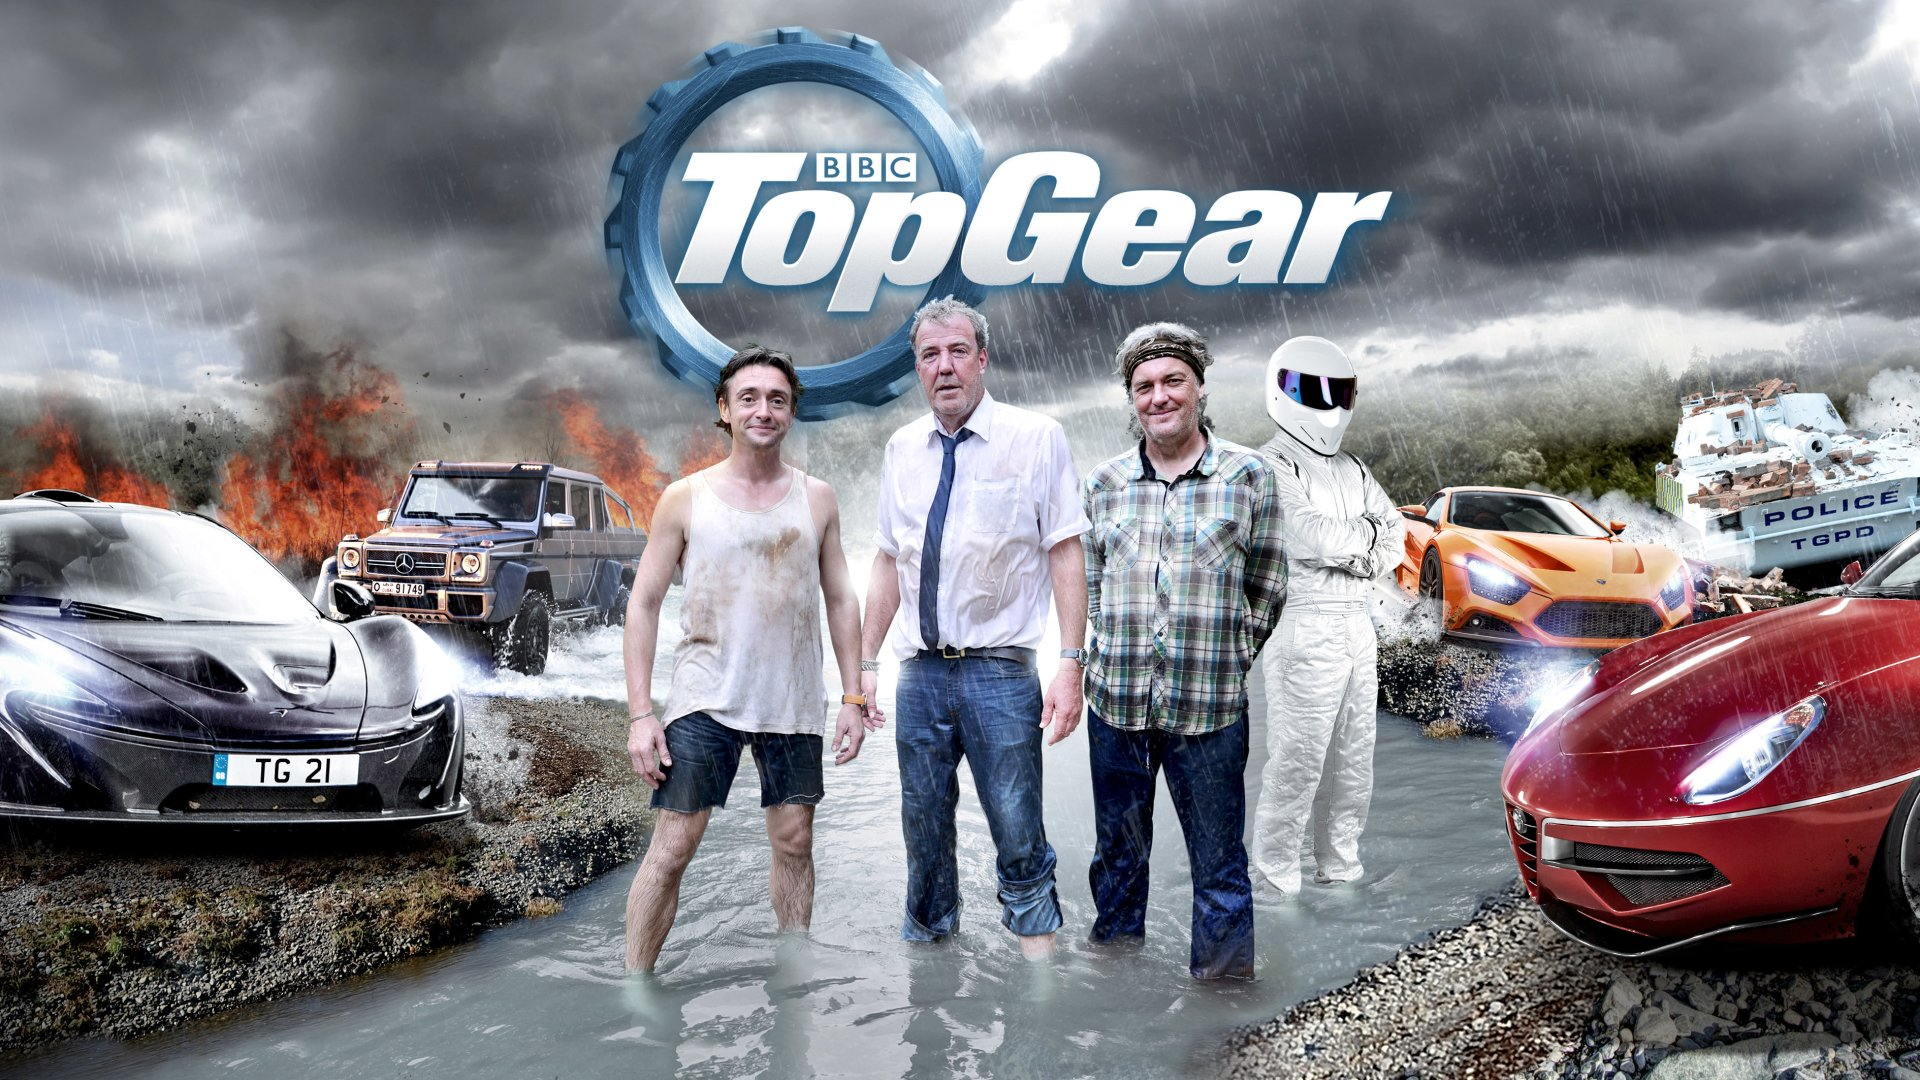 TV Show - Top Gear  The Stig (Top Gear) Car Wallpaper